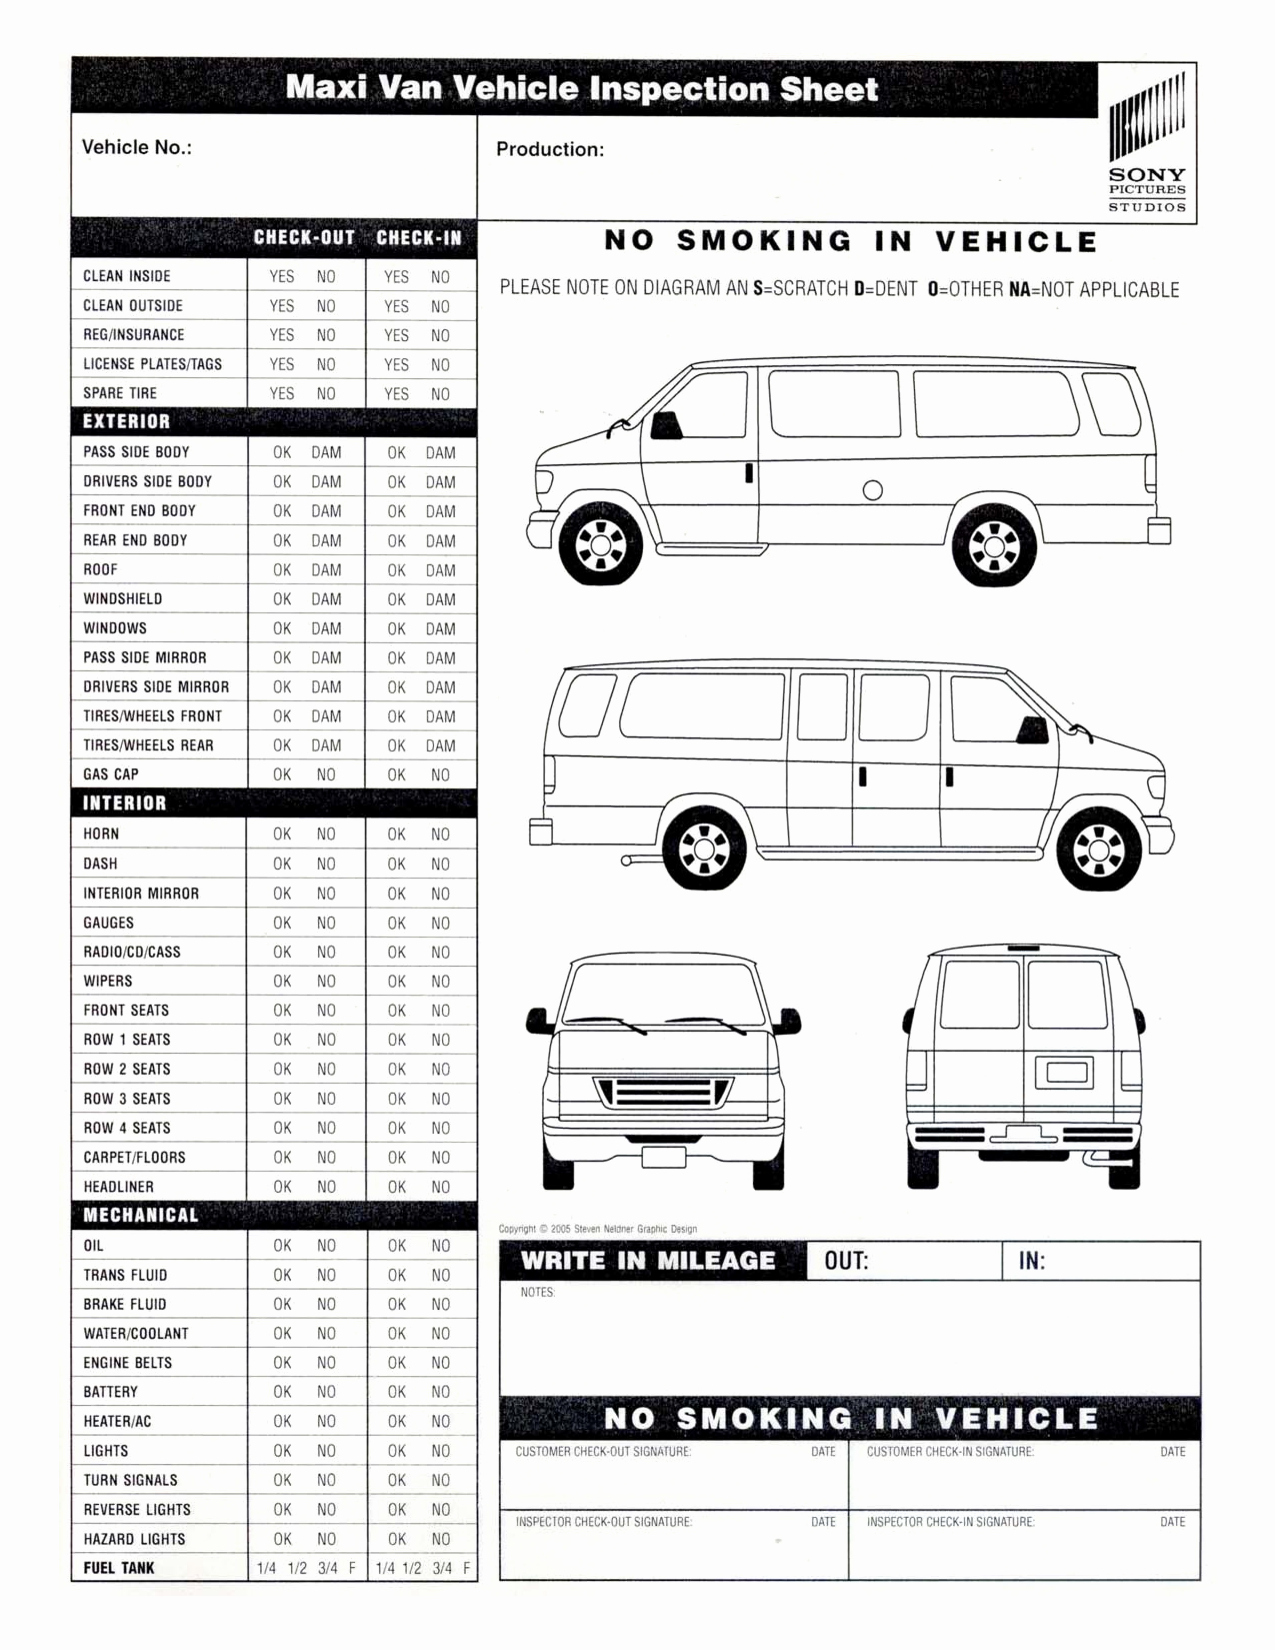 Car Inspection Checklist Template Best Of Vehicle Inspection Sheet Template